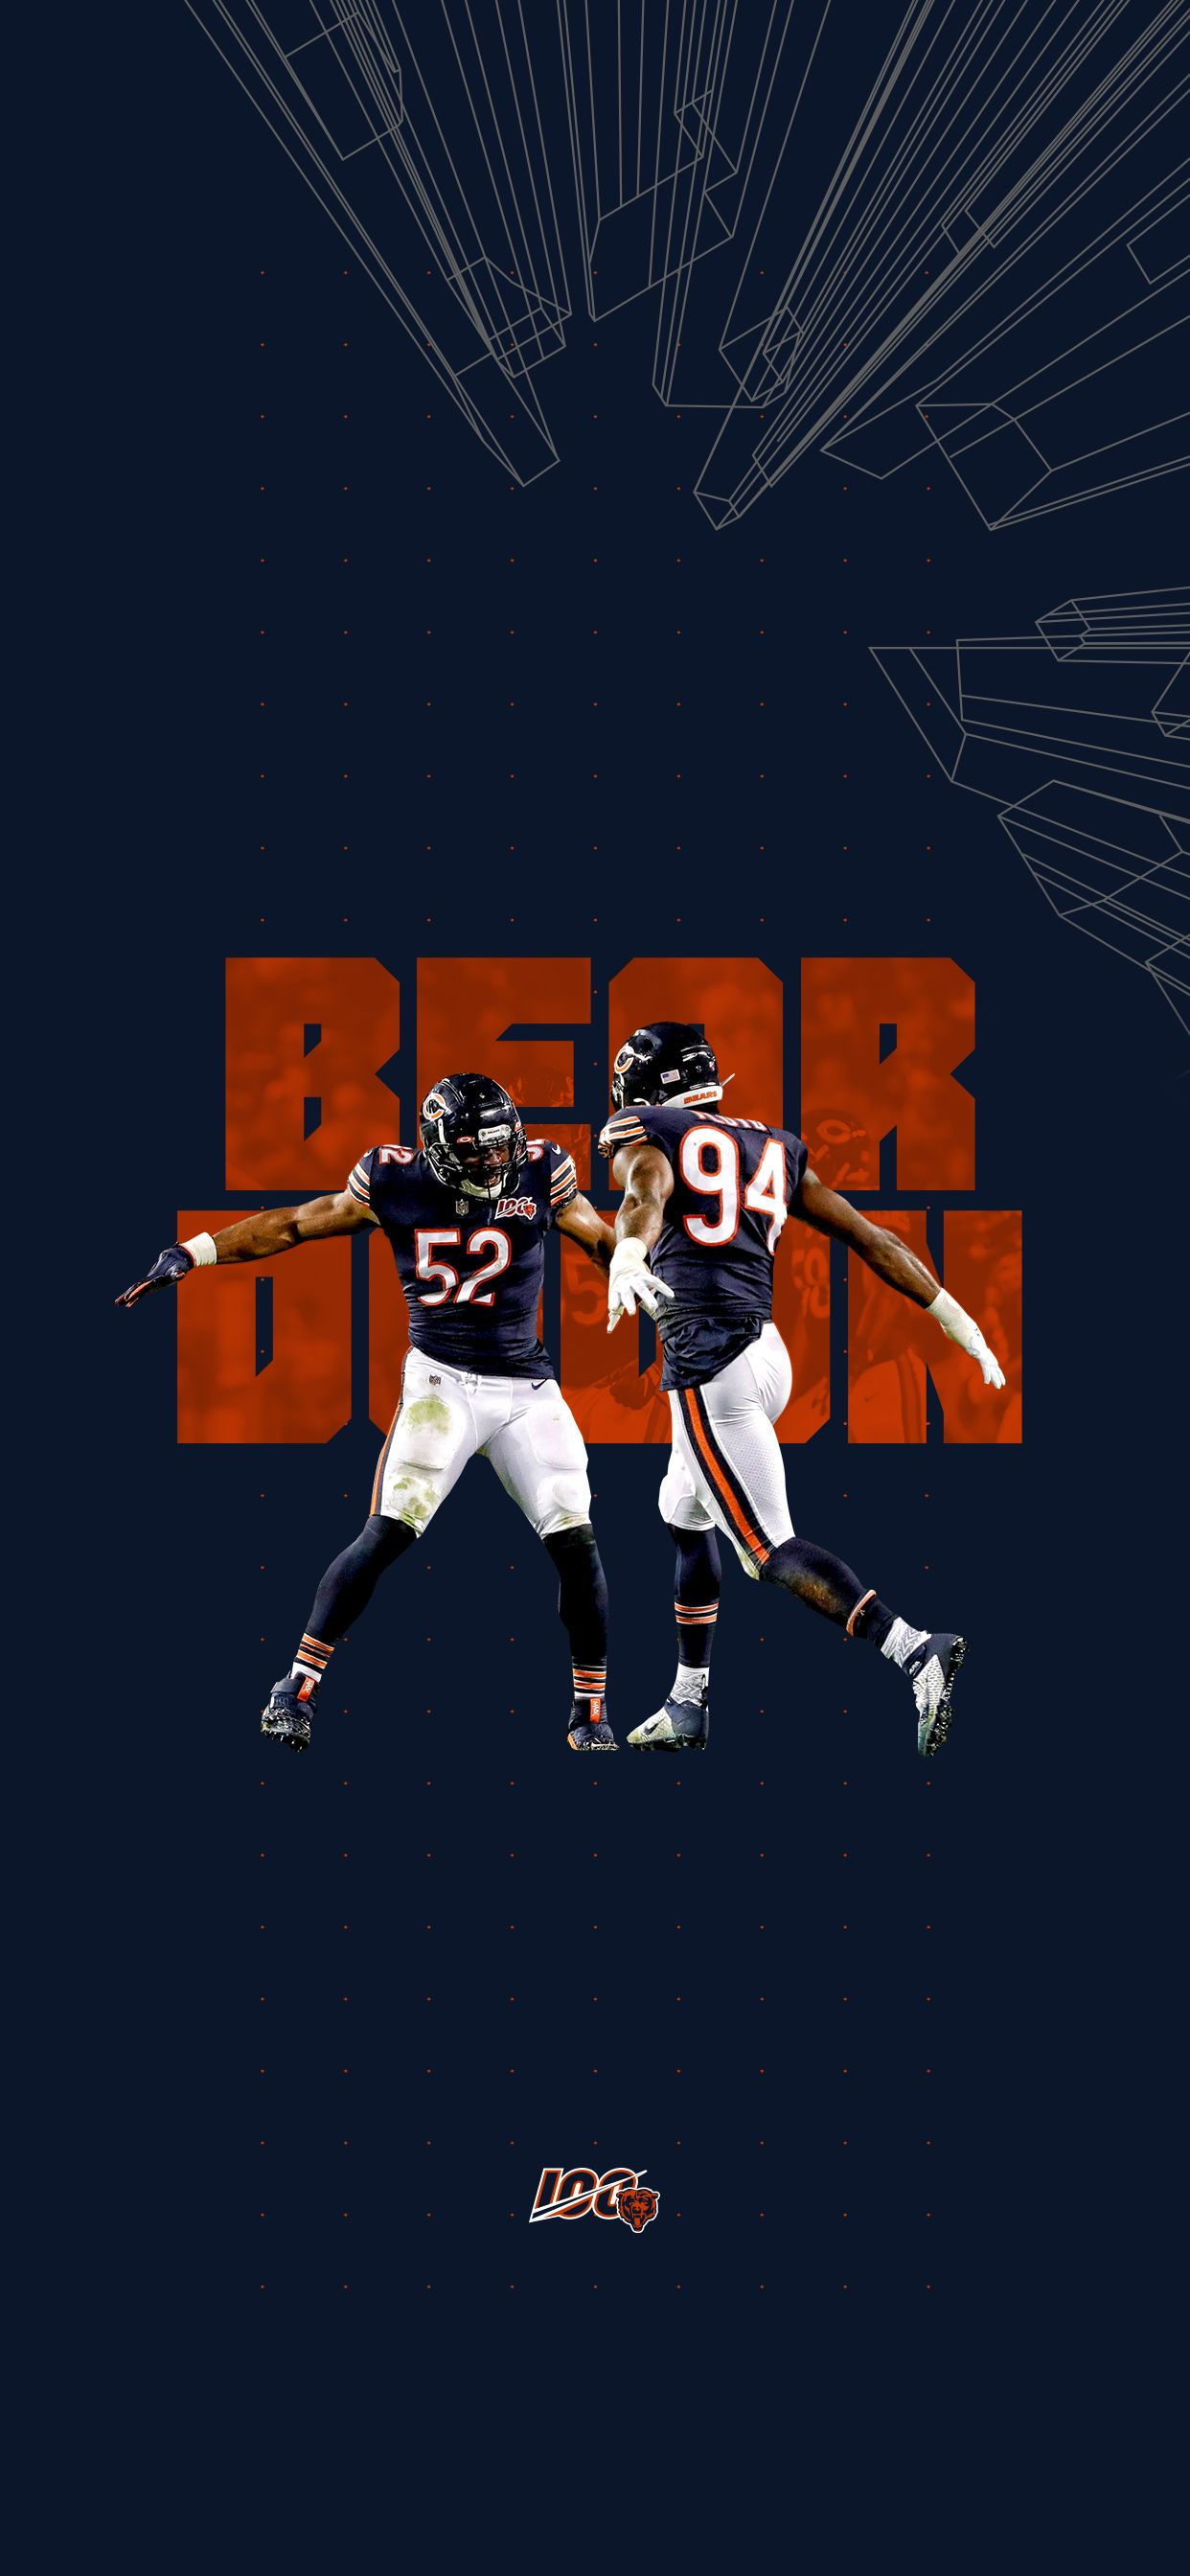 Wallpapers Chicago Bears Official Website is the perfect